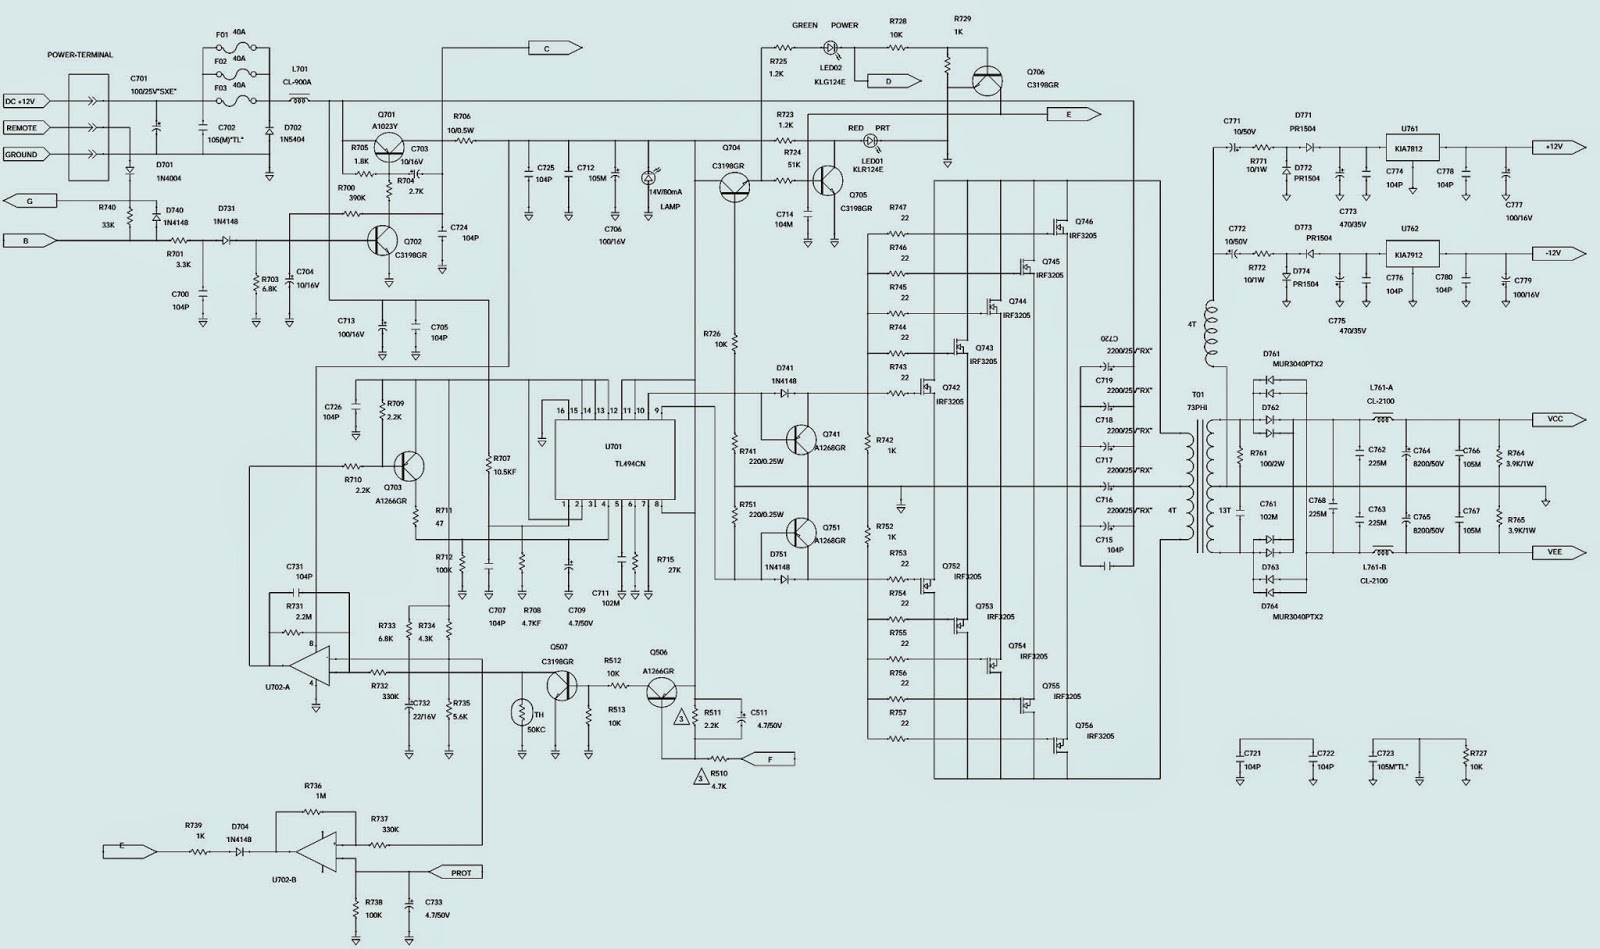 on jbl prv 175 wiring diagram